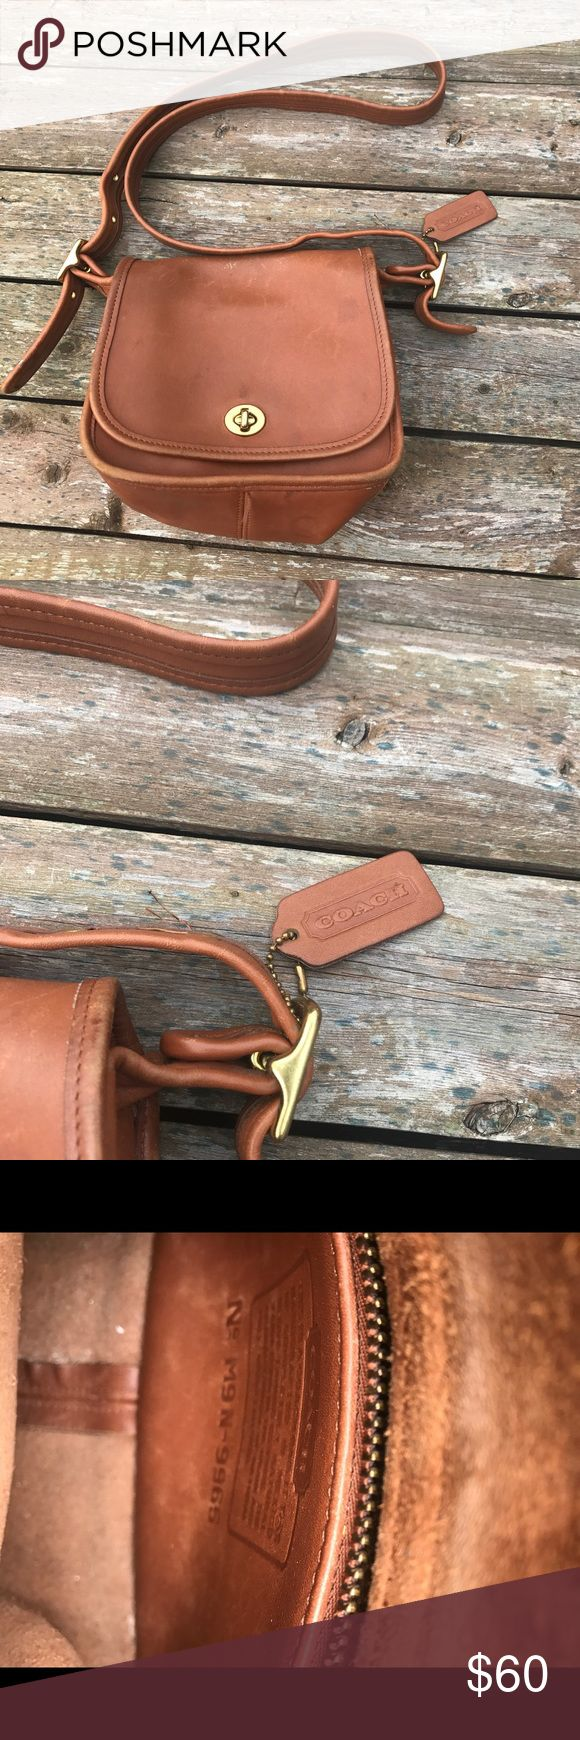 Vintage Coach Legacy Small Flap Crossbody Wear shown in photos but still in very good condition! Style 9965 Coach Bags Crossbody Bags